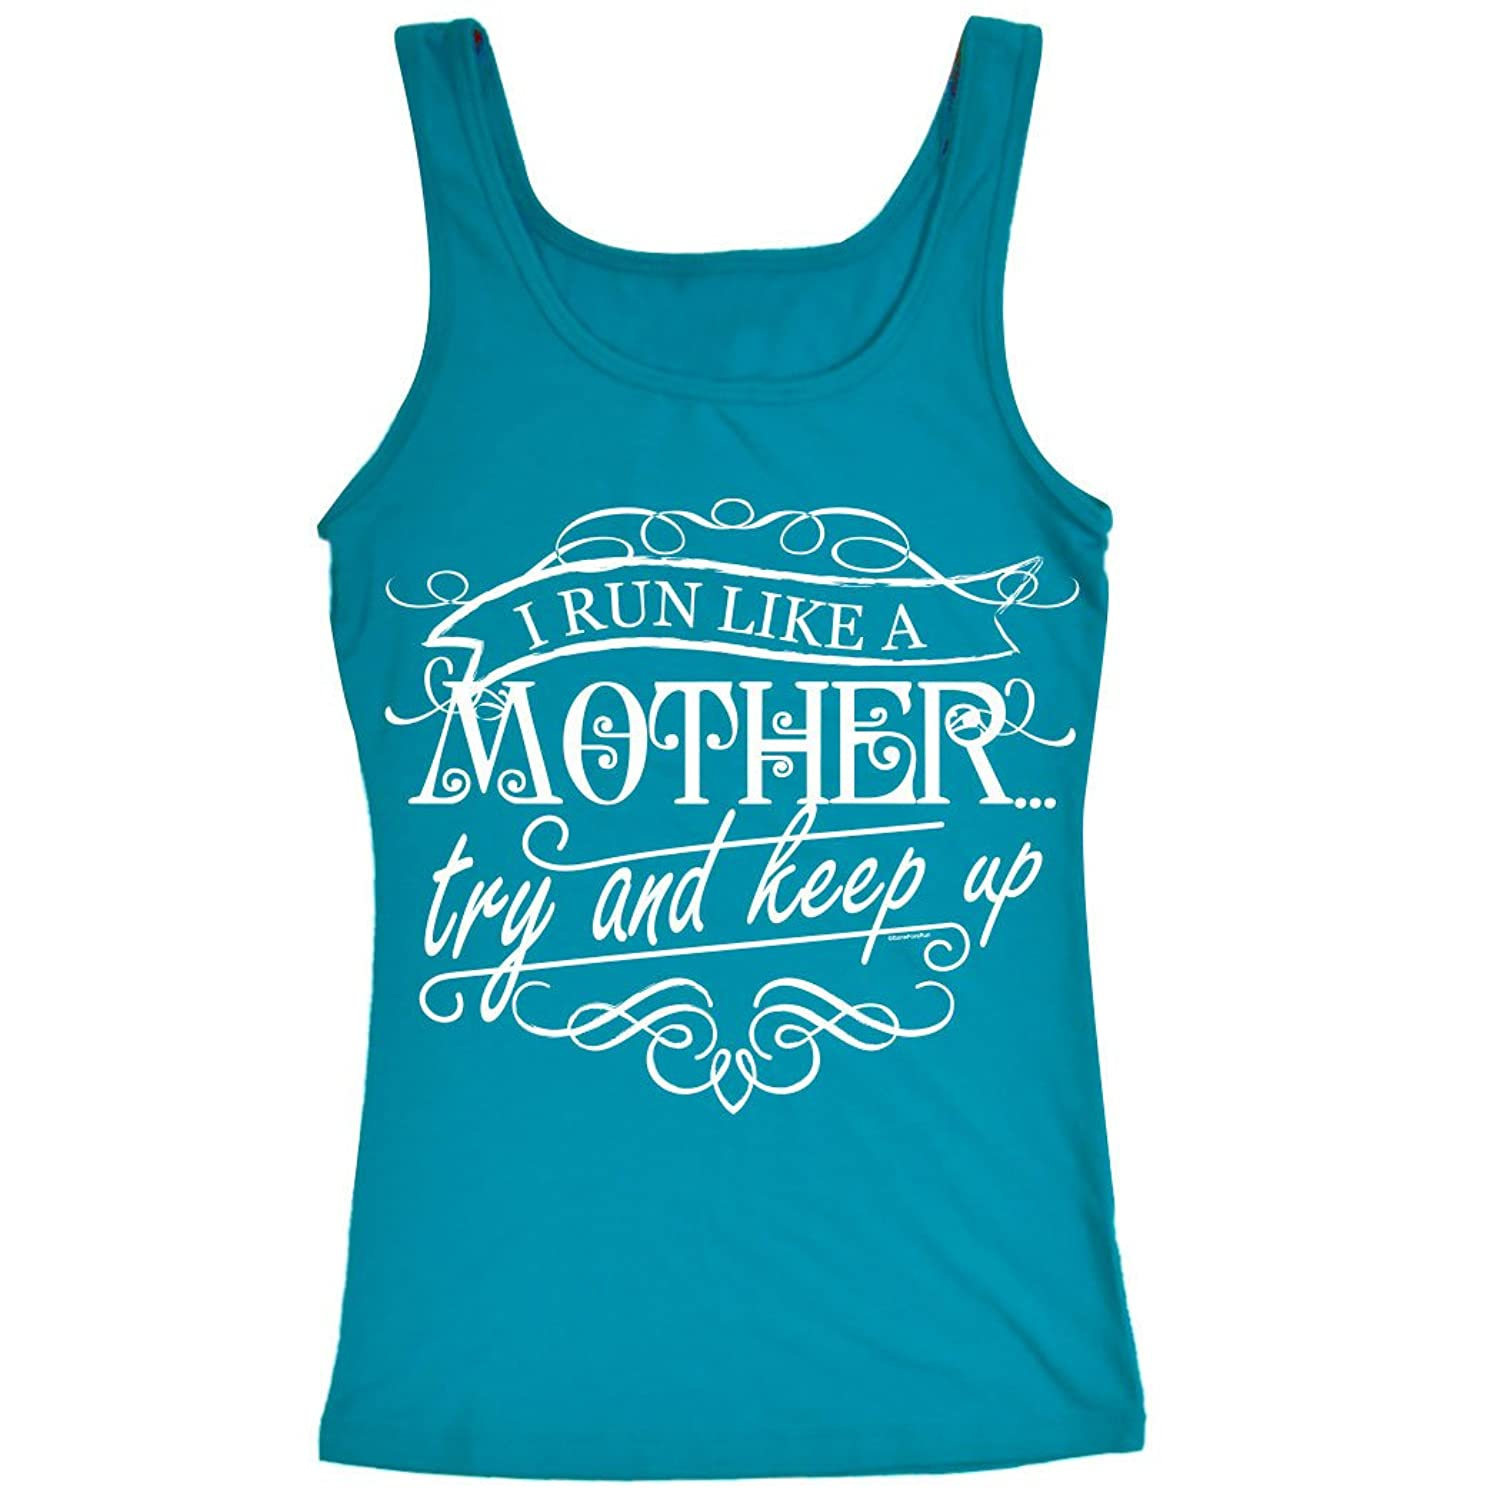 Womens Athletic Tank Top Like a Mother